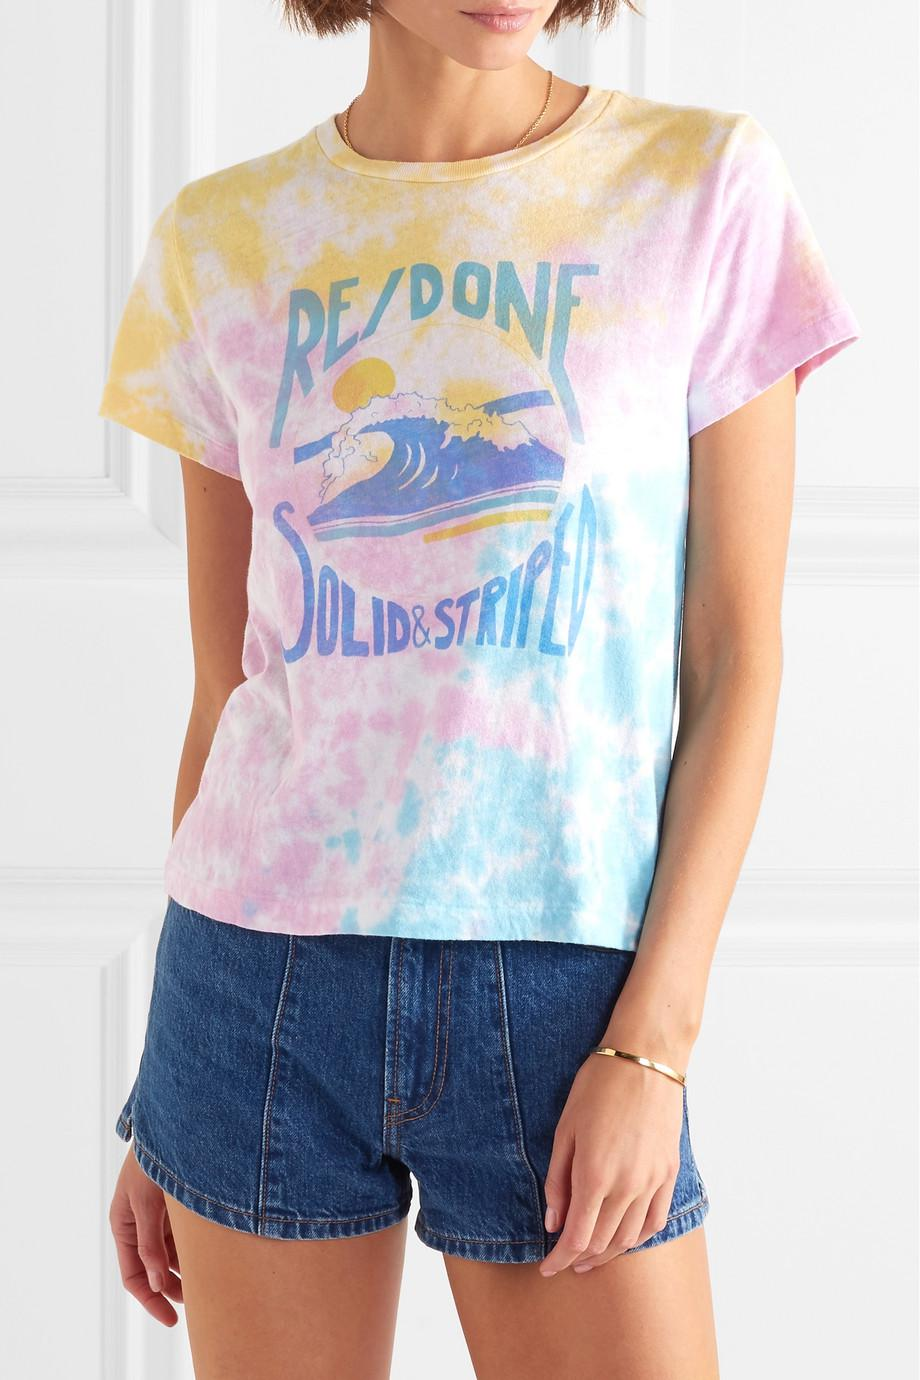 Free Shipping Top Quality Cheap Sneakernews + Re/done The Venice Printed Tie-dyed Cotton-jersey T-shirt - Pink Solid & Striped Visa Payment Cheap Online ZOrNu